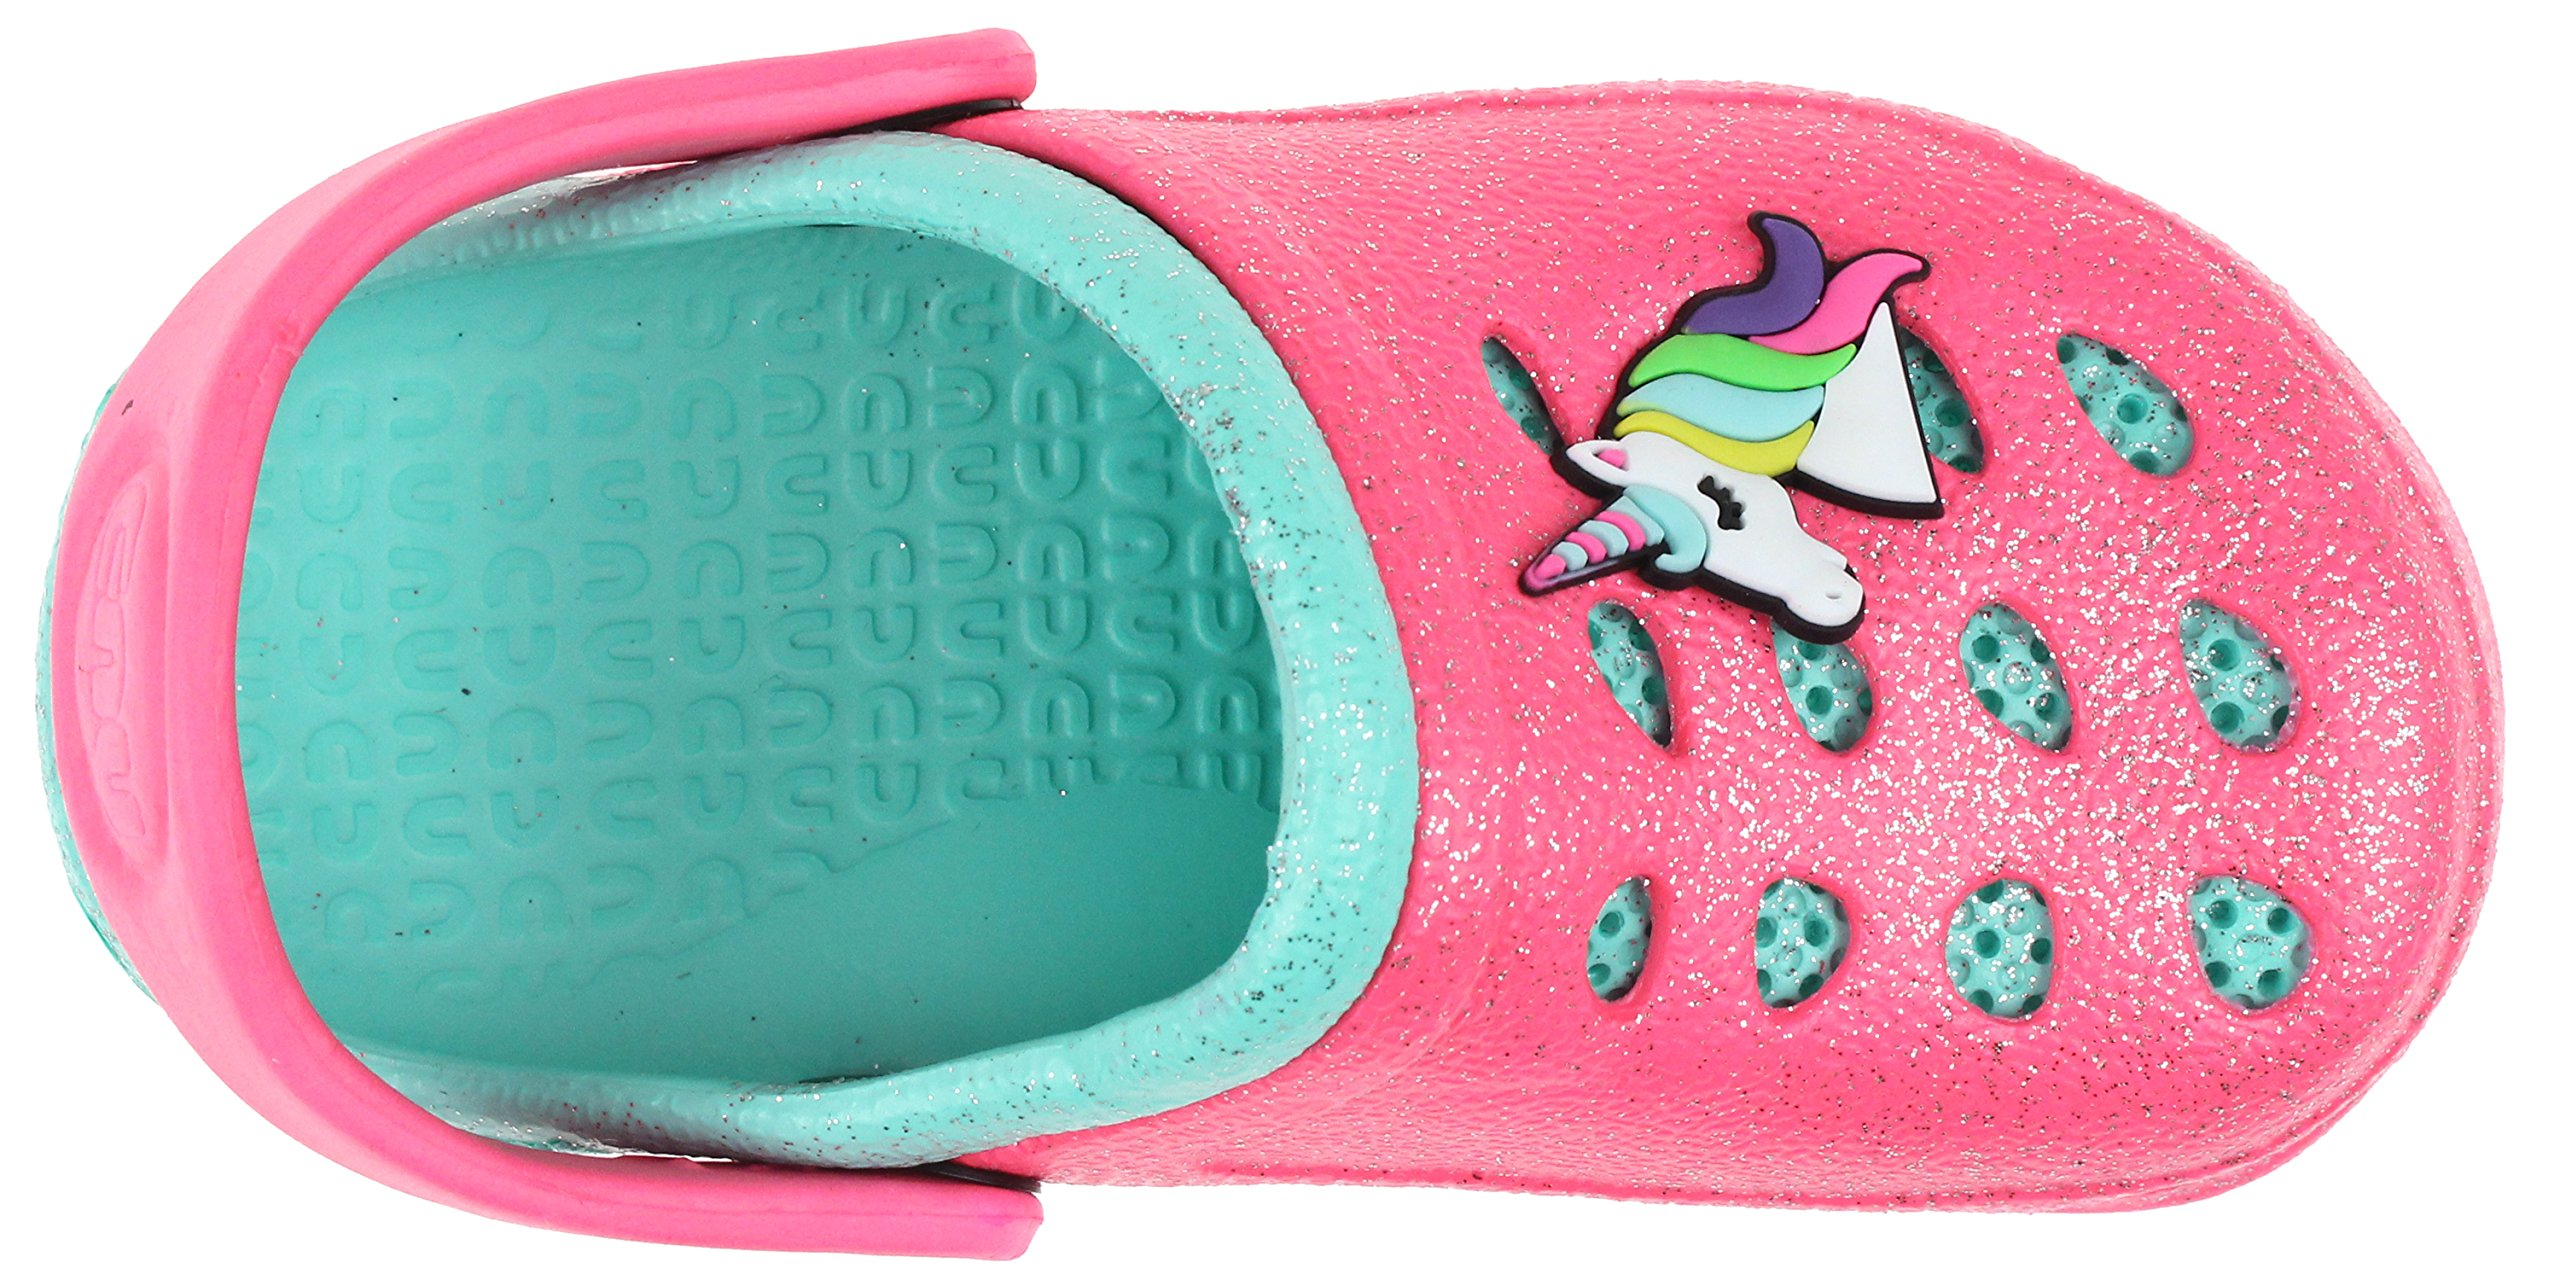 Capelli New York Toddler Girls Allover Glitter Clog with Unicorn Jelly Patch Pink 6/7 by Capelli New York (Image #3)